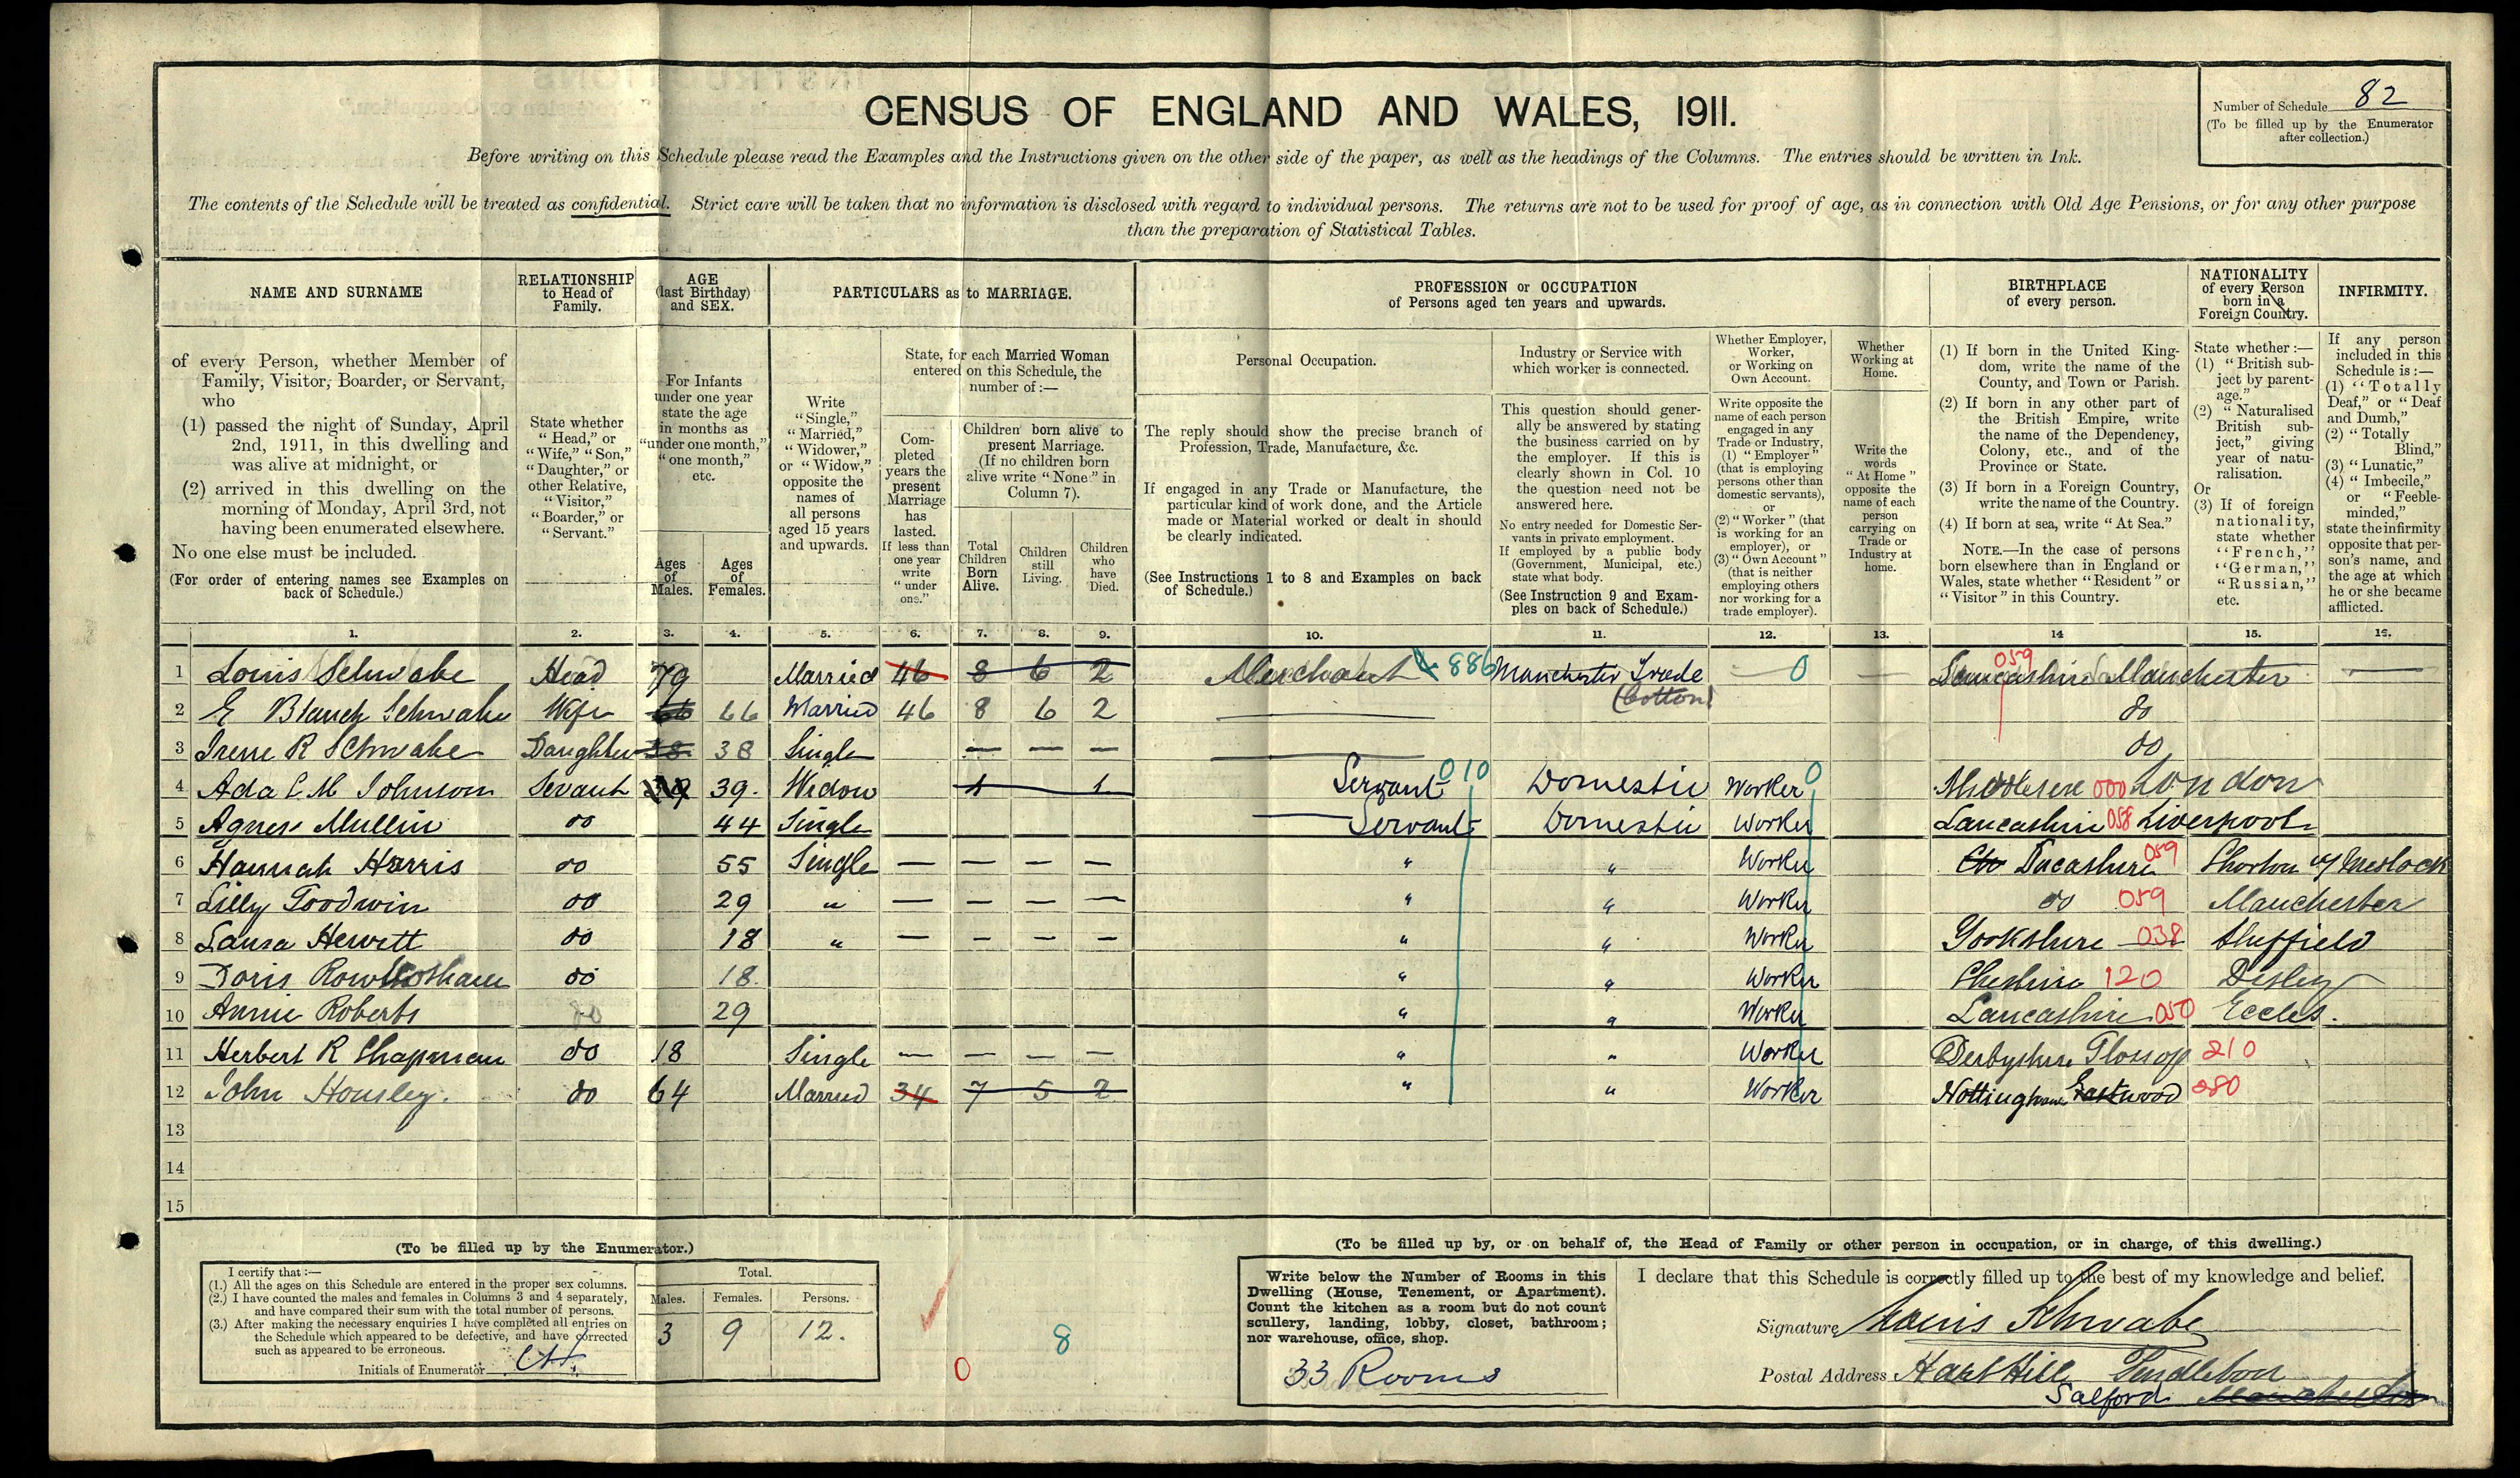 Louis Schwabe on 1911 census